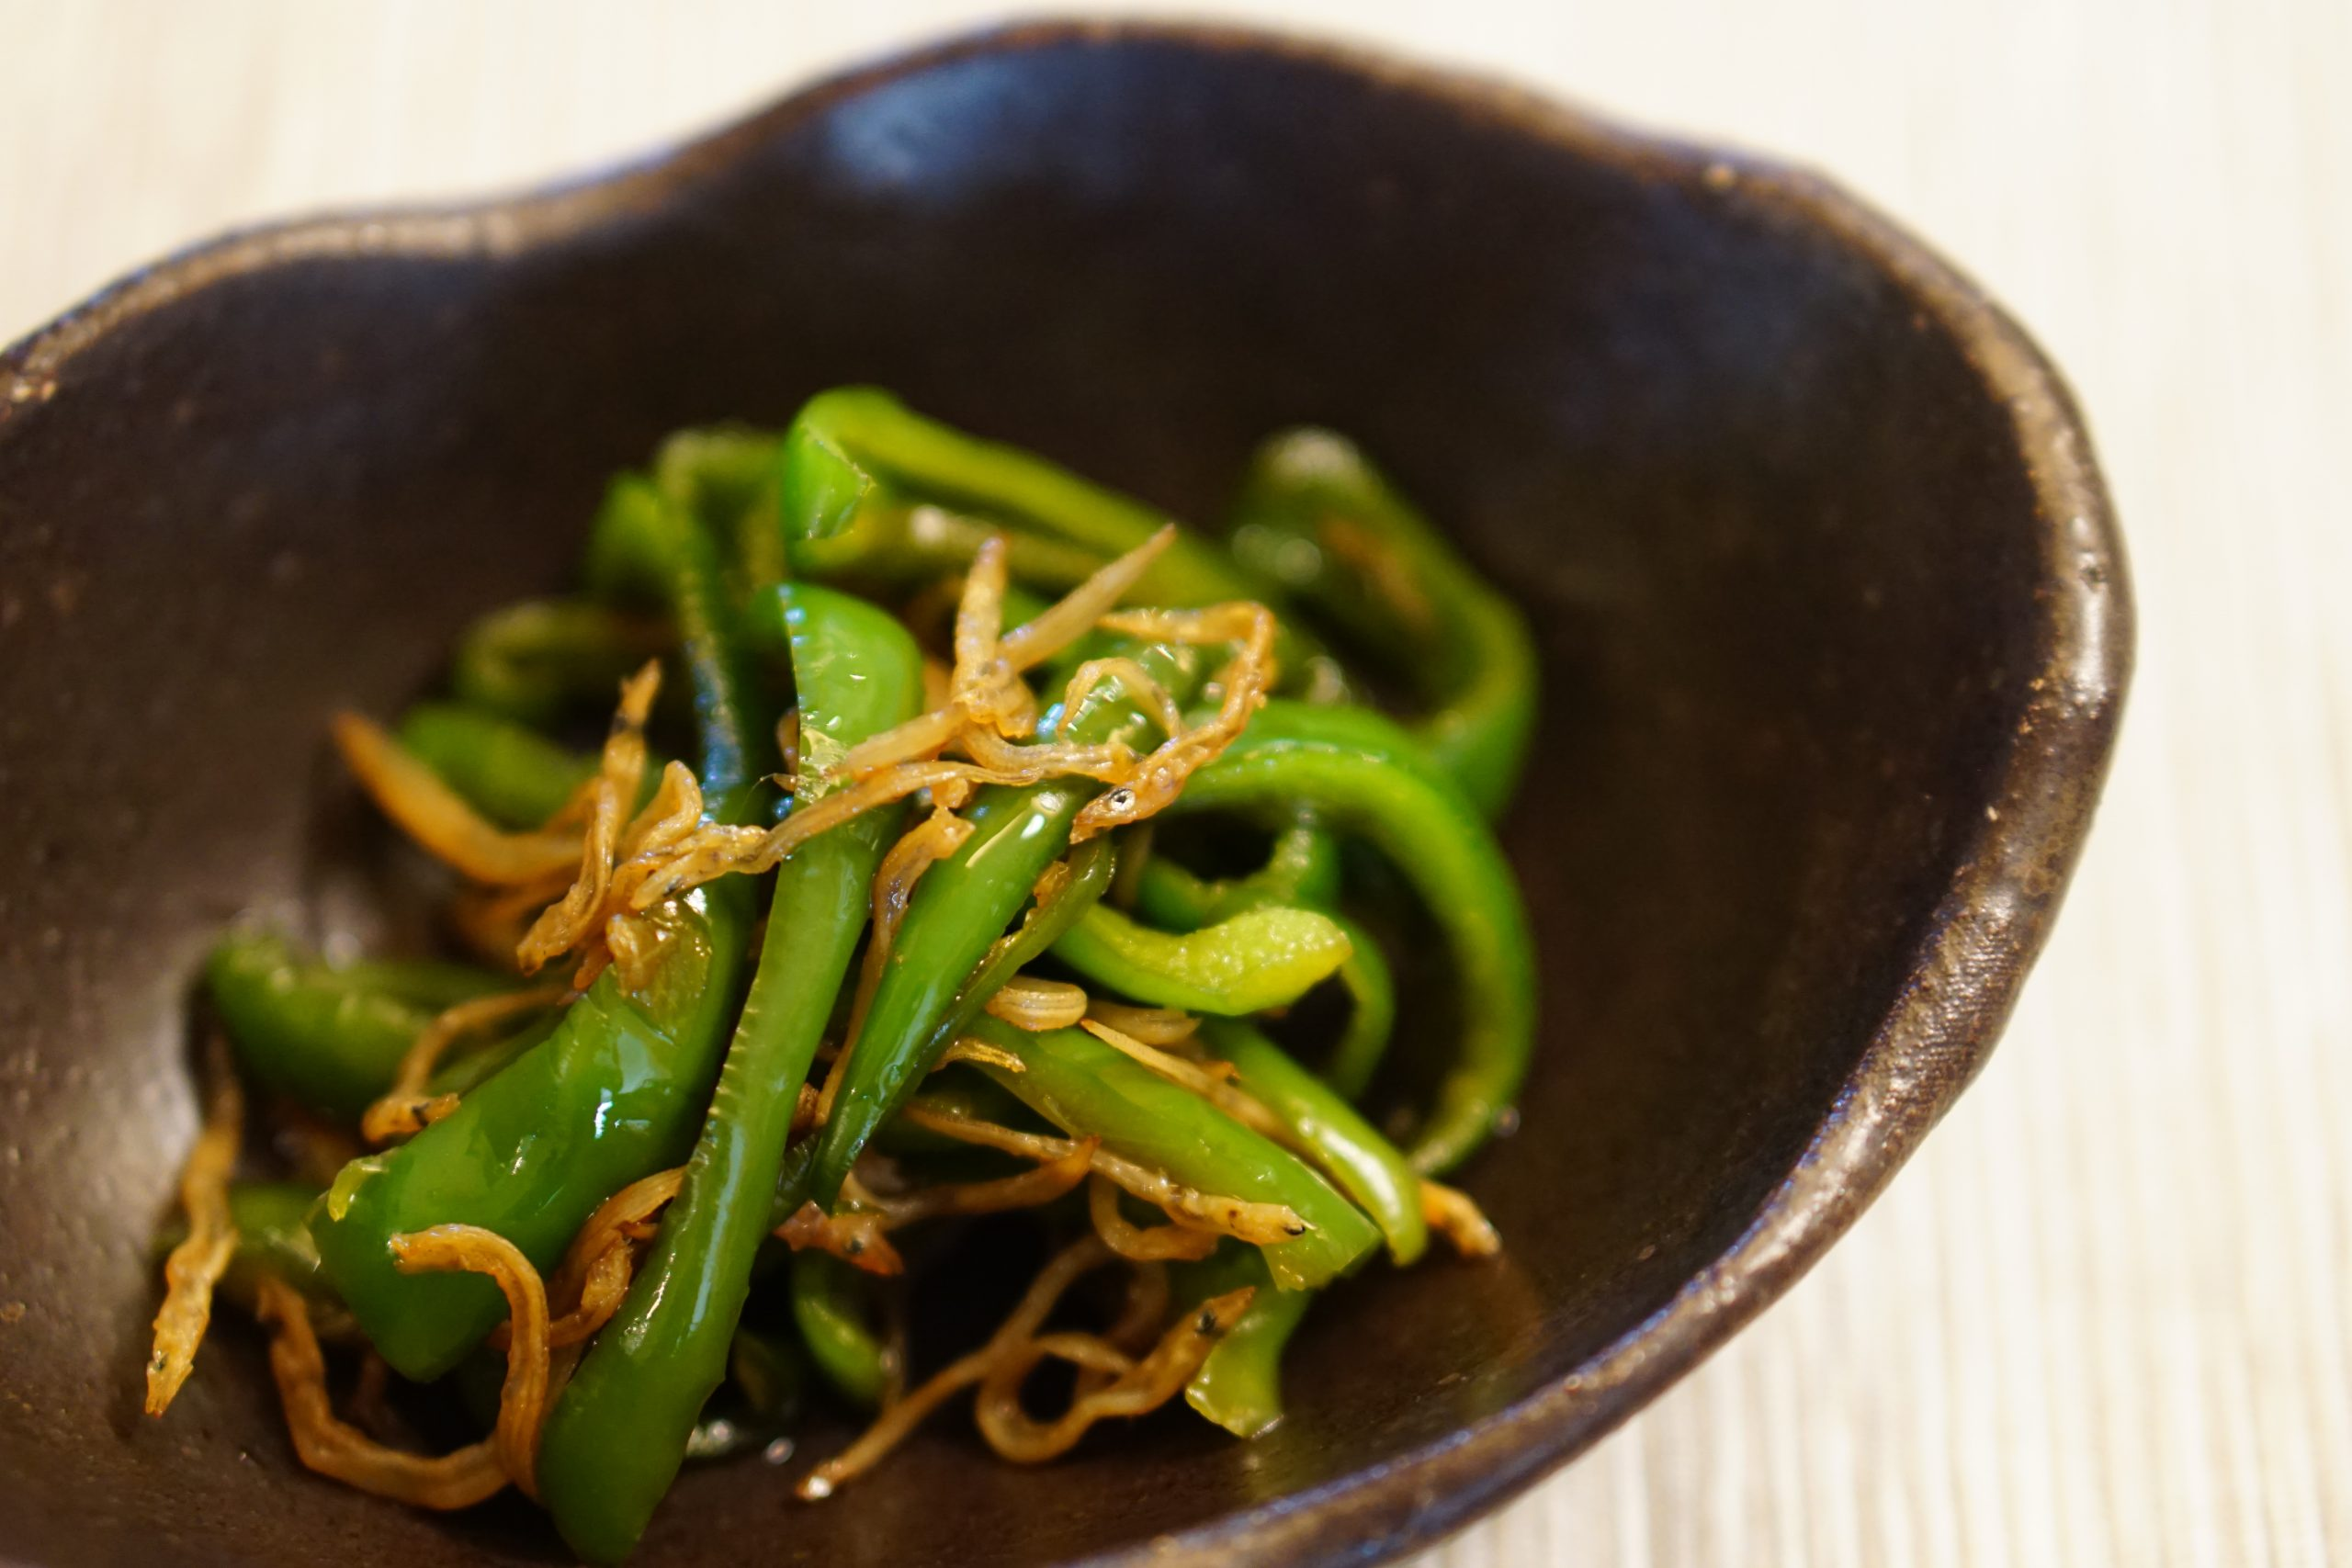 Green Pepper and Chirimenjako Stir Fry